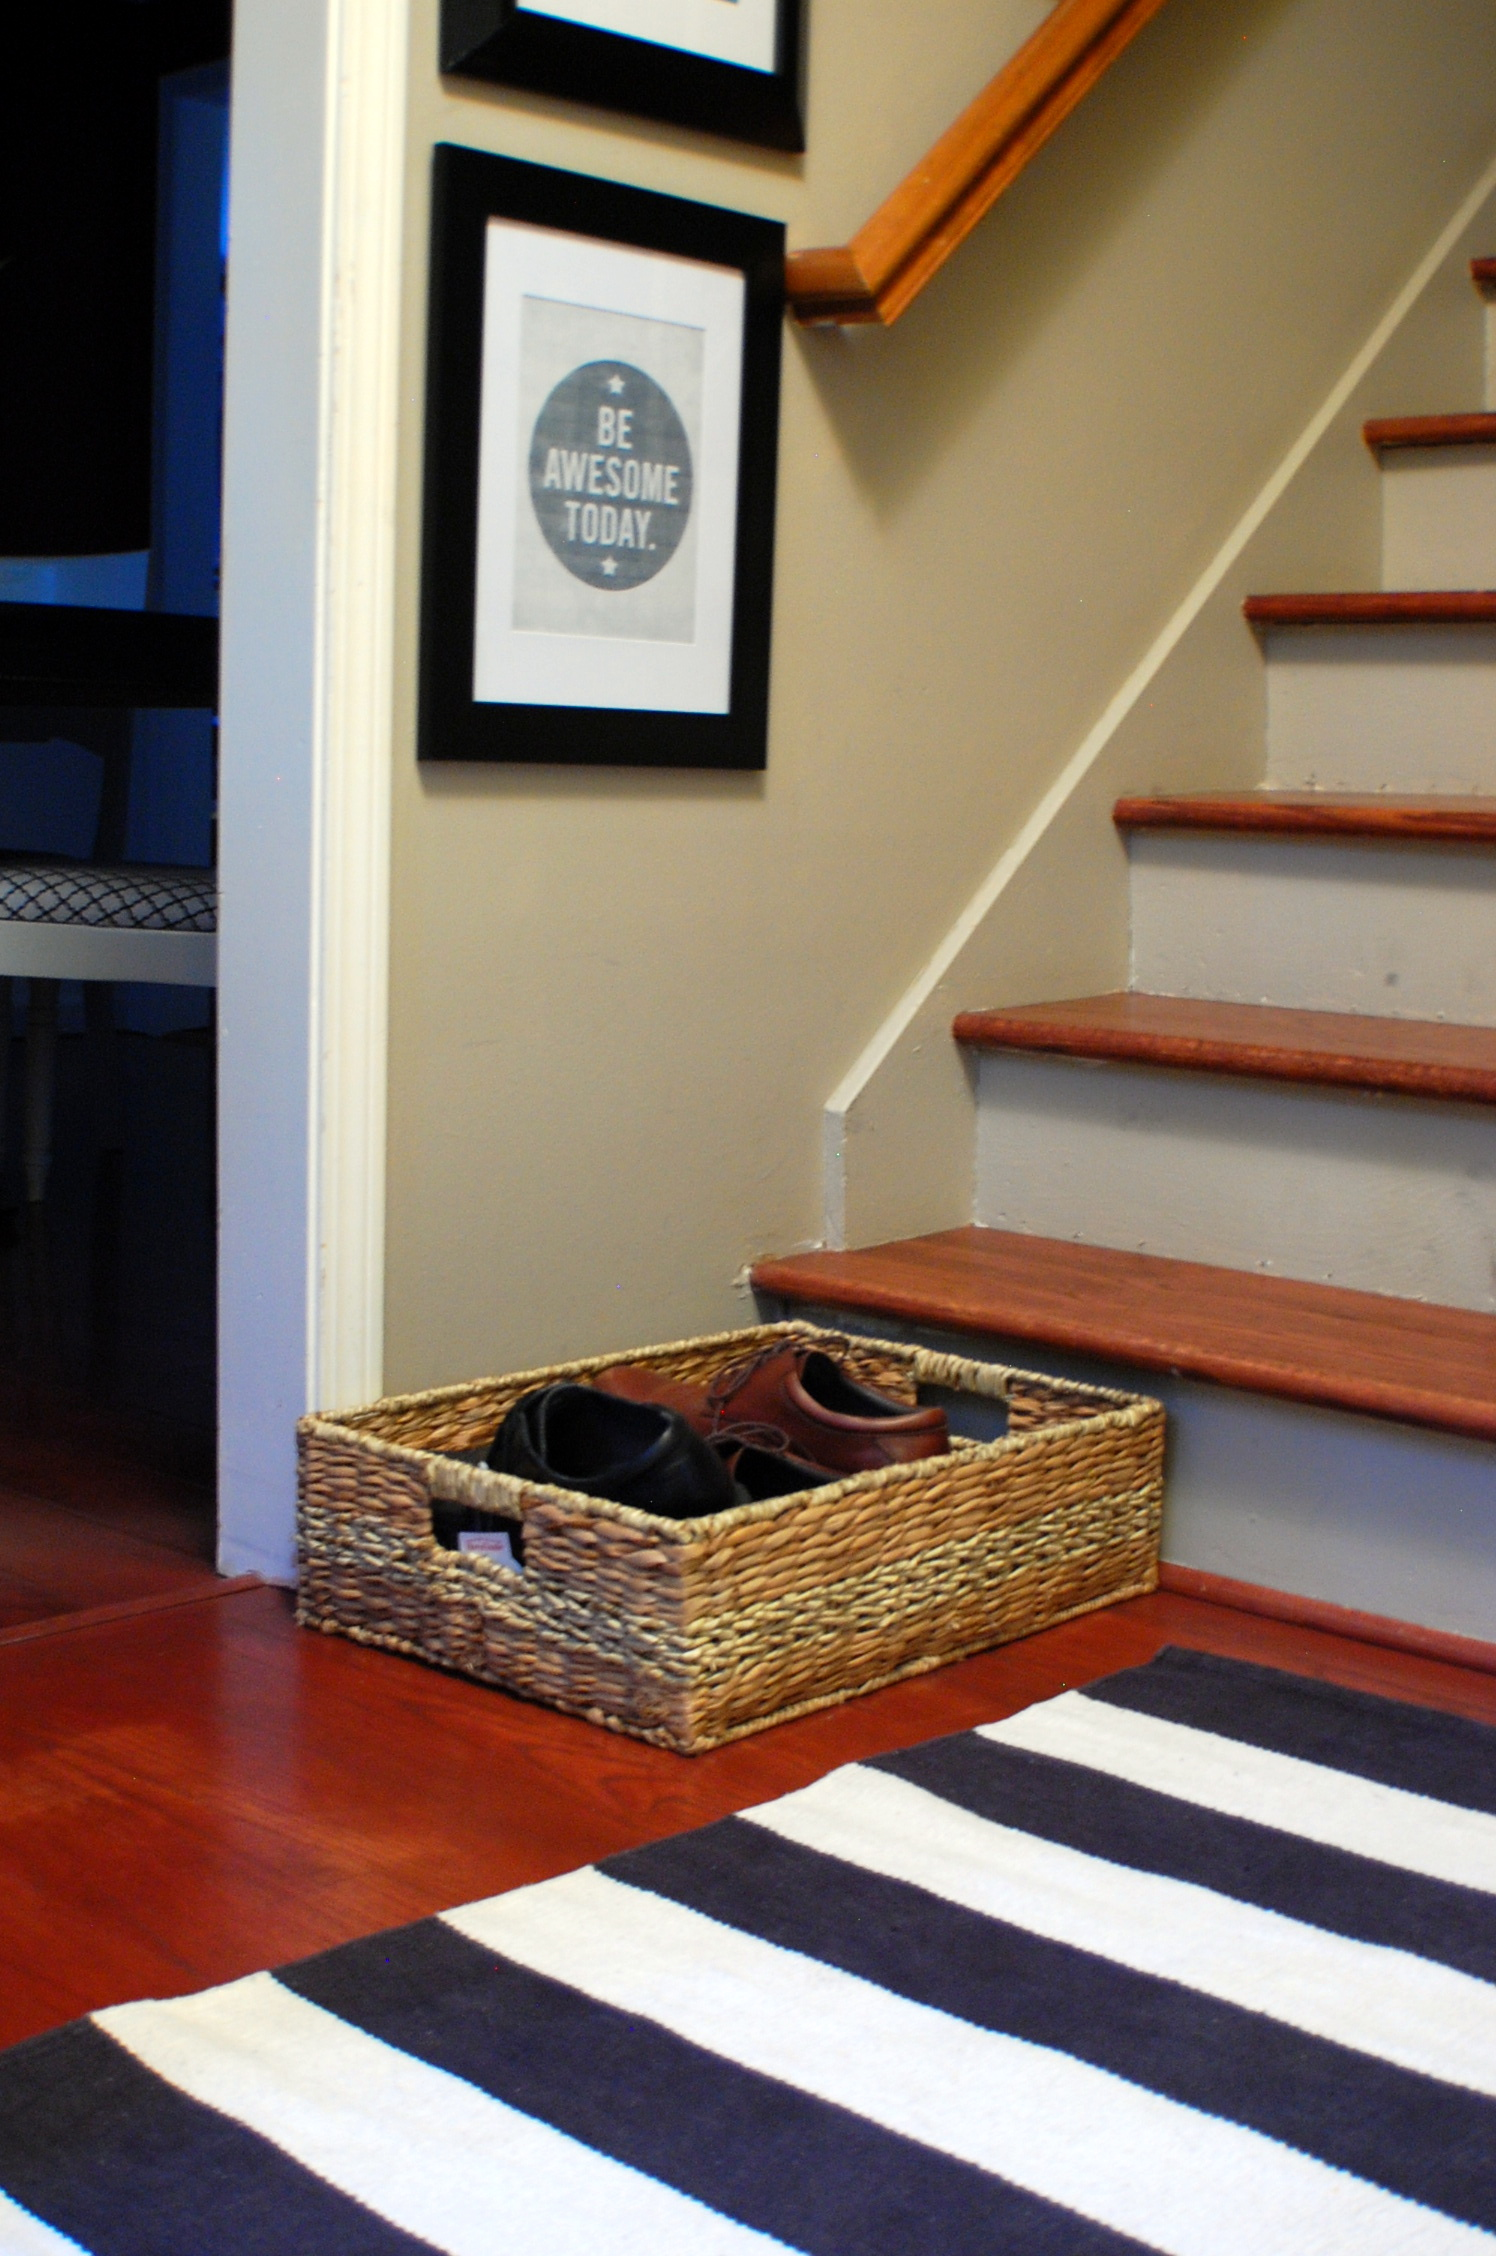 Since The Back Door Enters Into The Main Living Room, I Thought A Nicer,  Tall Basket Would Work Well By The French Doors To Hide Messy Piles Of Shoes .